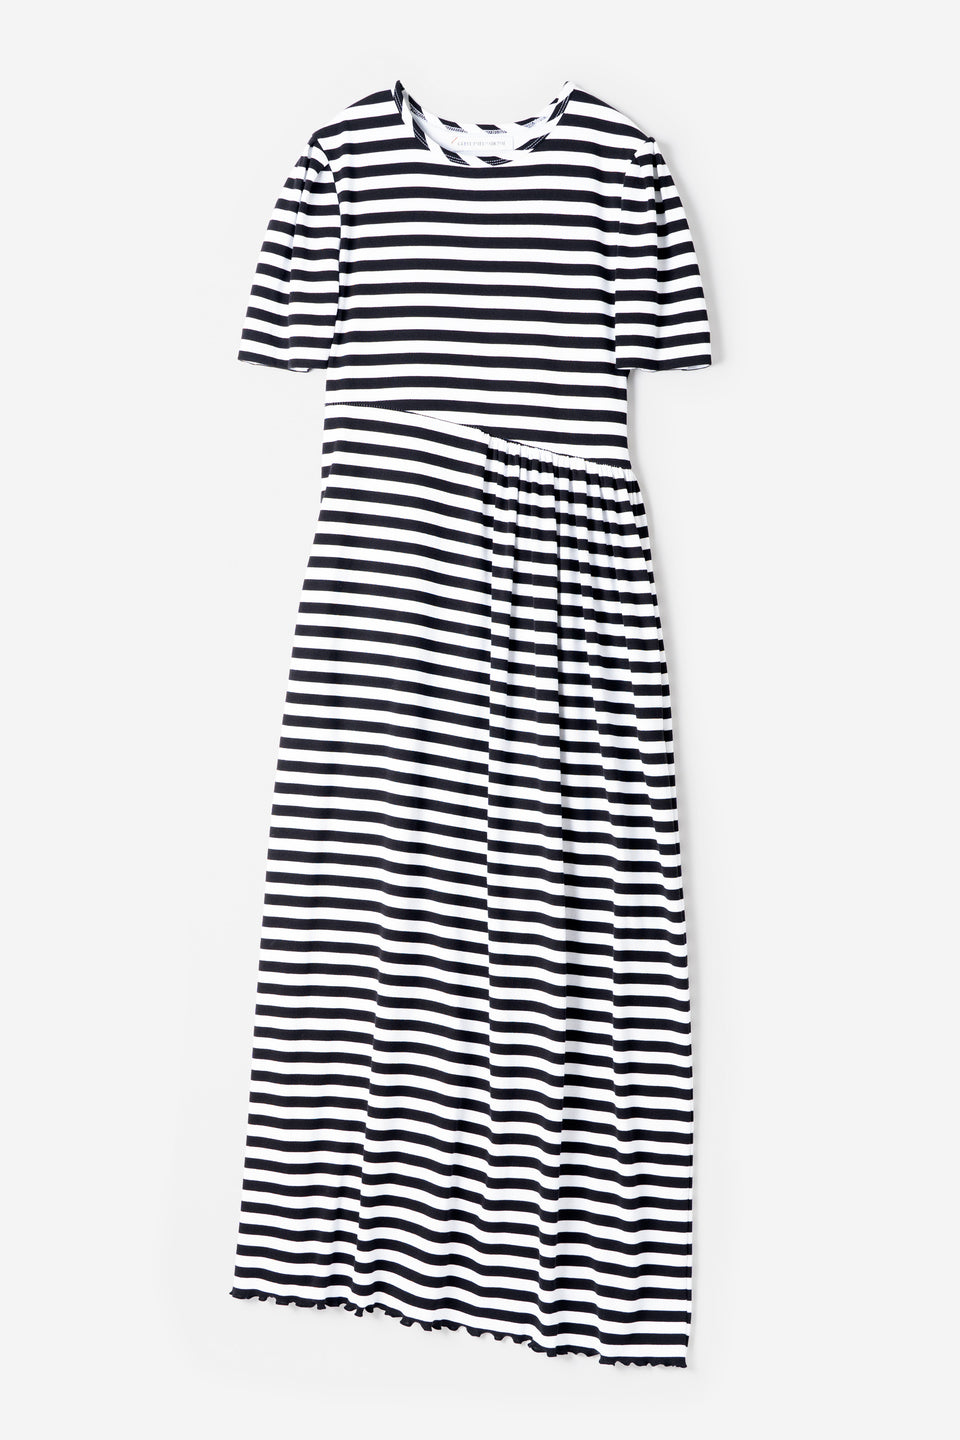 Technorama Stripe Dress in White Mix